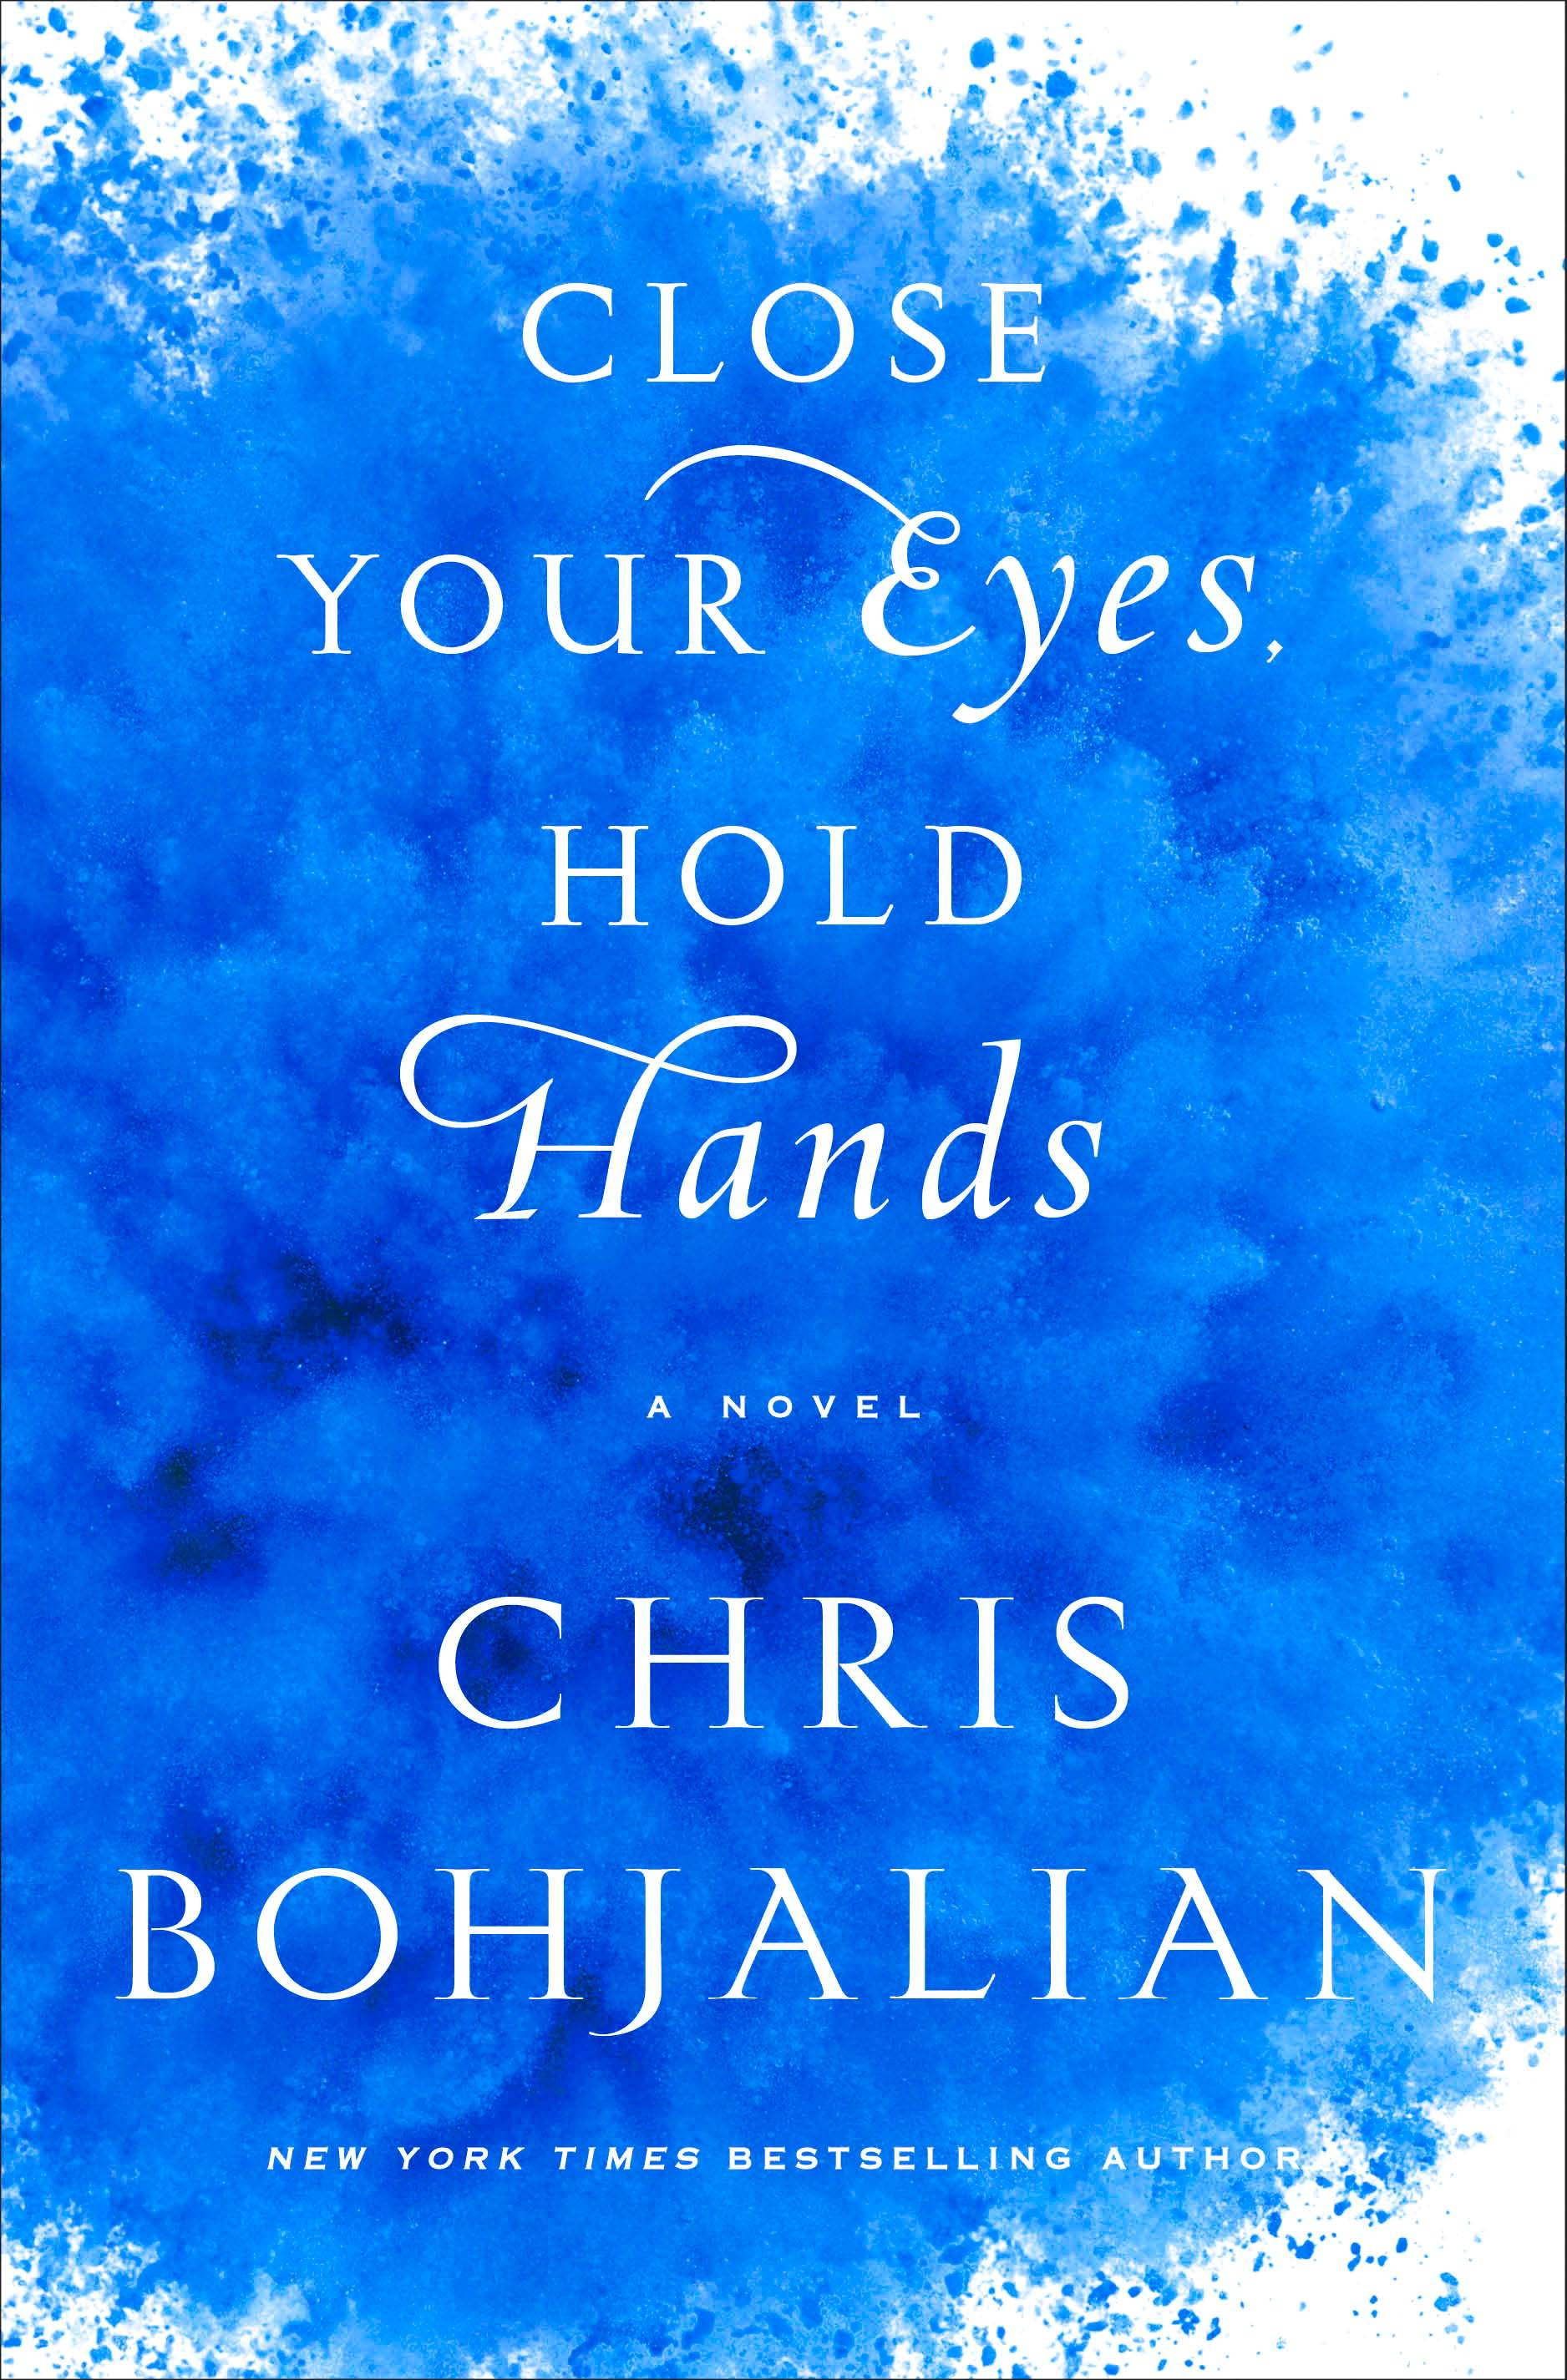 """Close Your Eyes, Hold Hands"" author Chris Bohjalian stops at Anderson's in Naperville on Thursday, July 17."